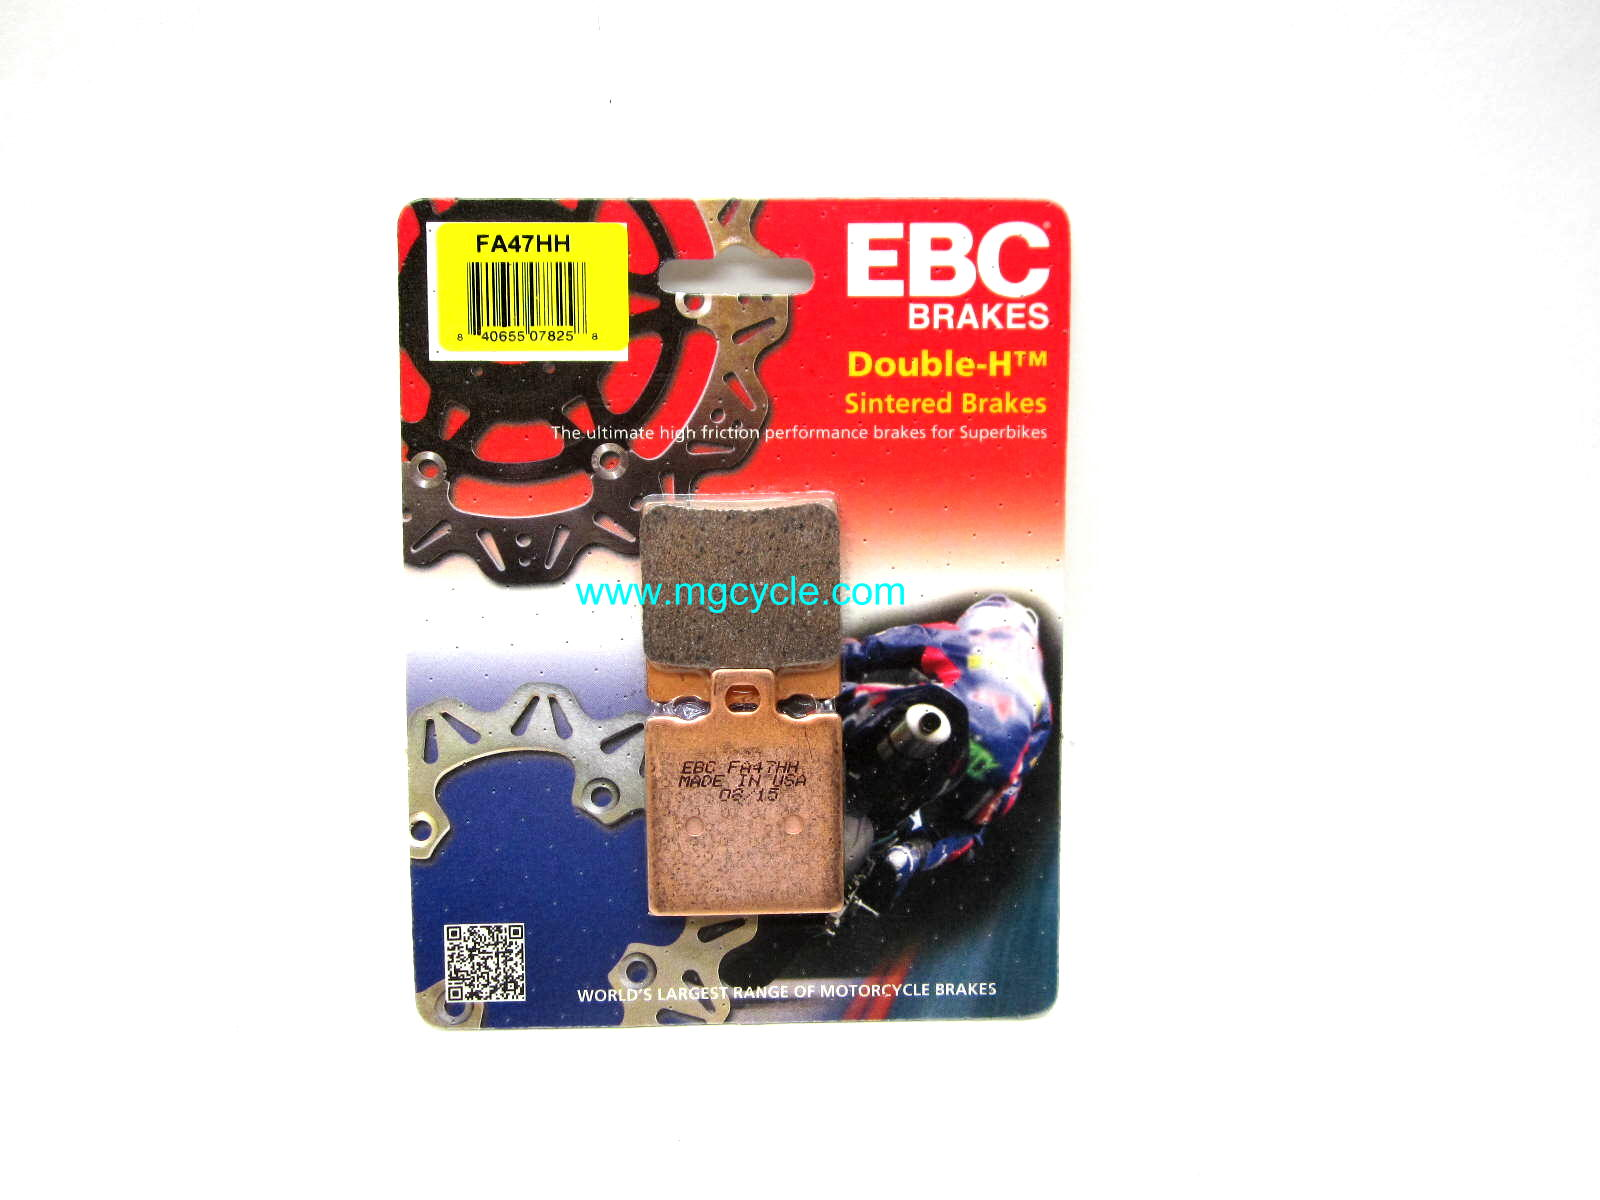 EBC sintered brake pads, F05 small twins, V11 Sport rear